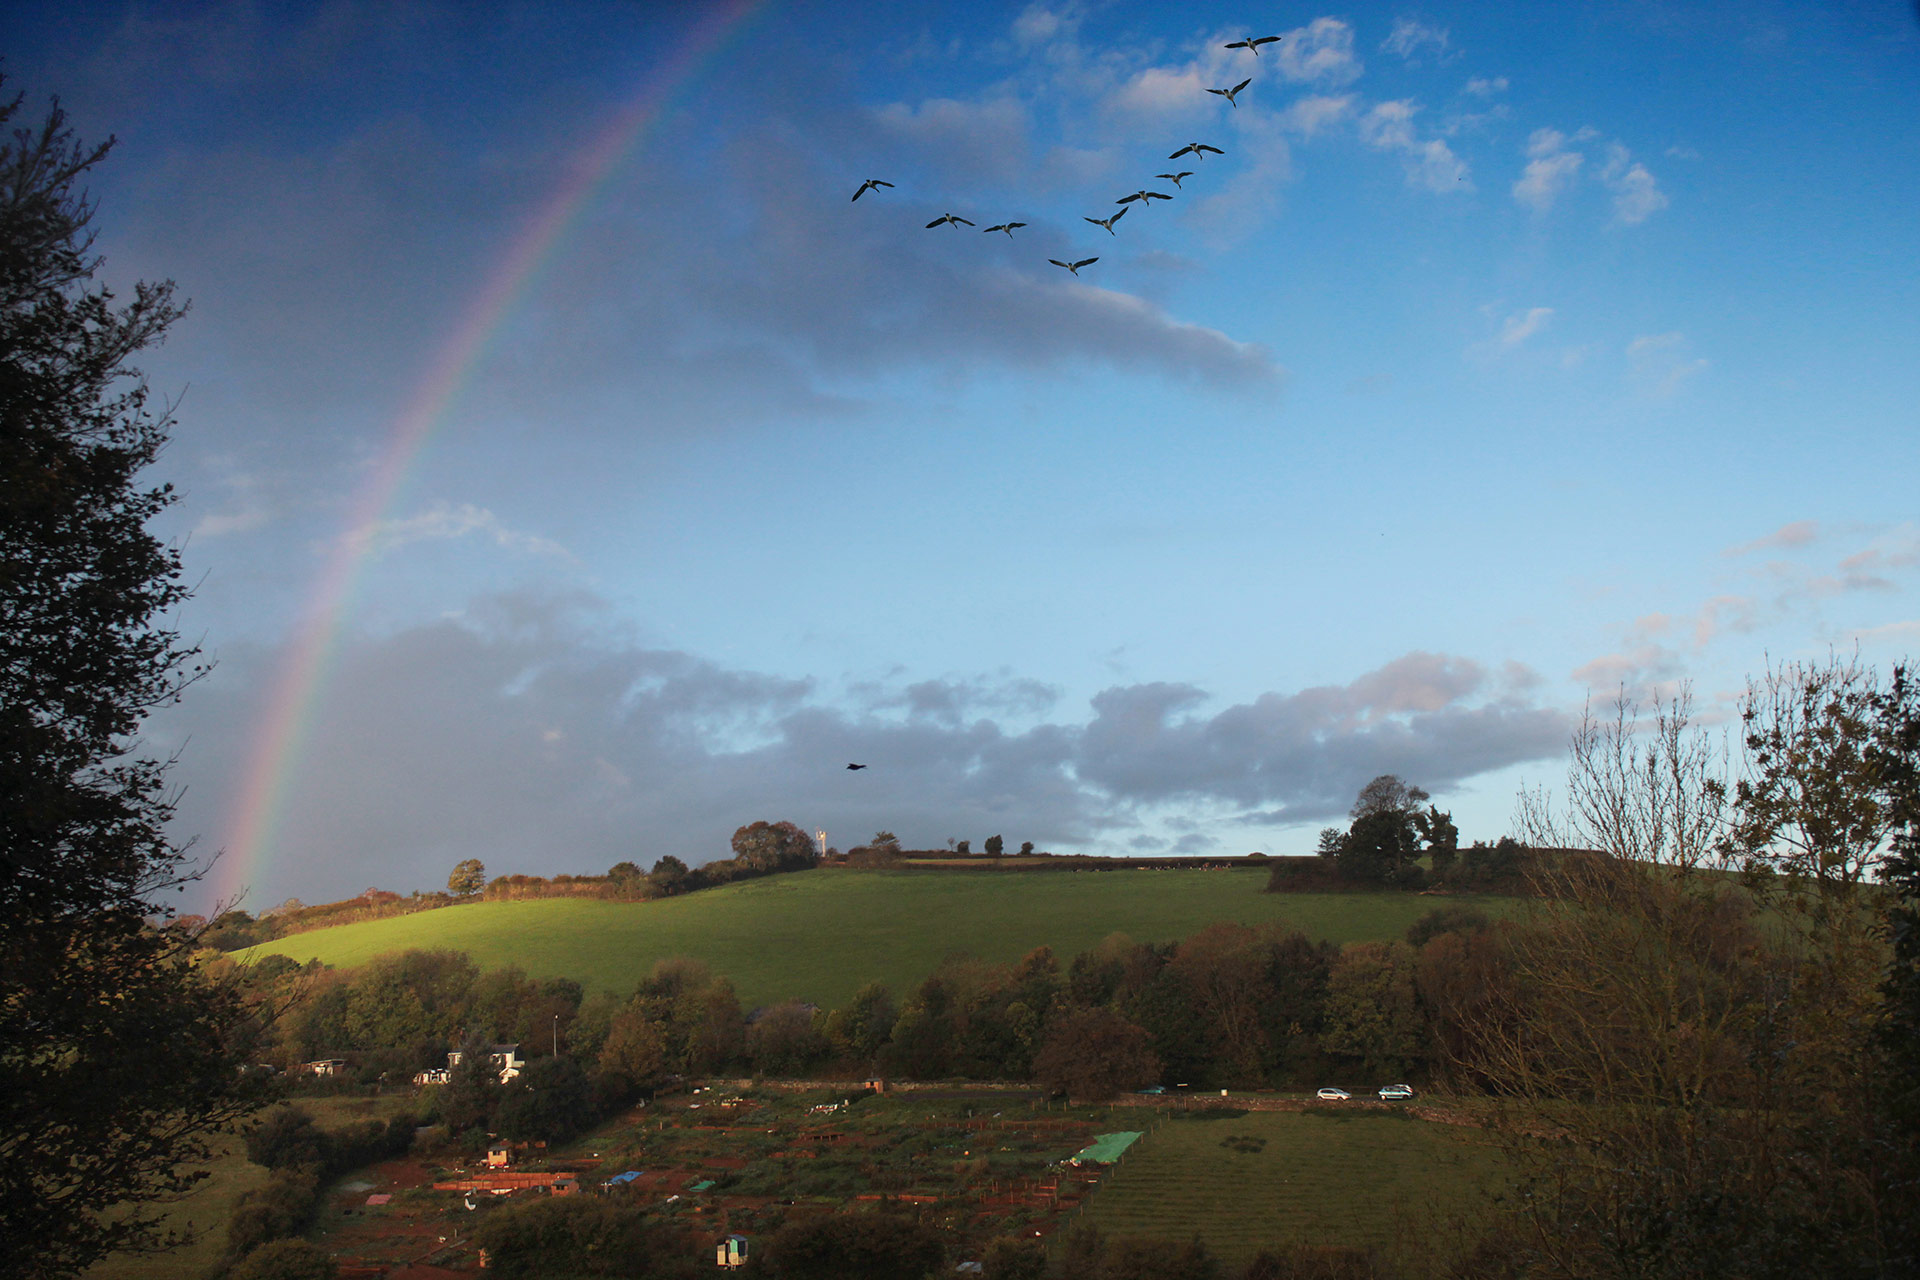 Geese migrating at the end of summer, and a rainbow sends them upon their way.